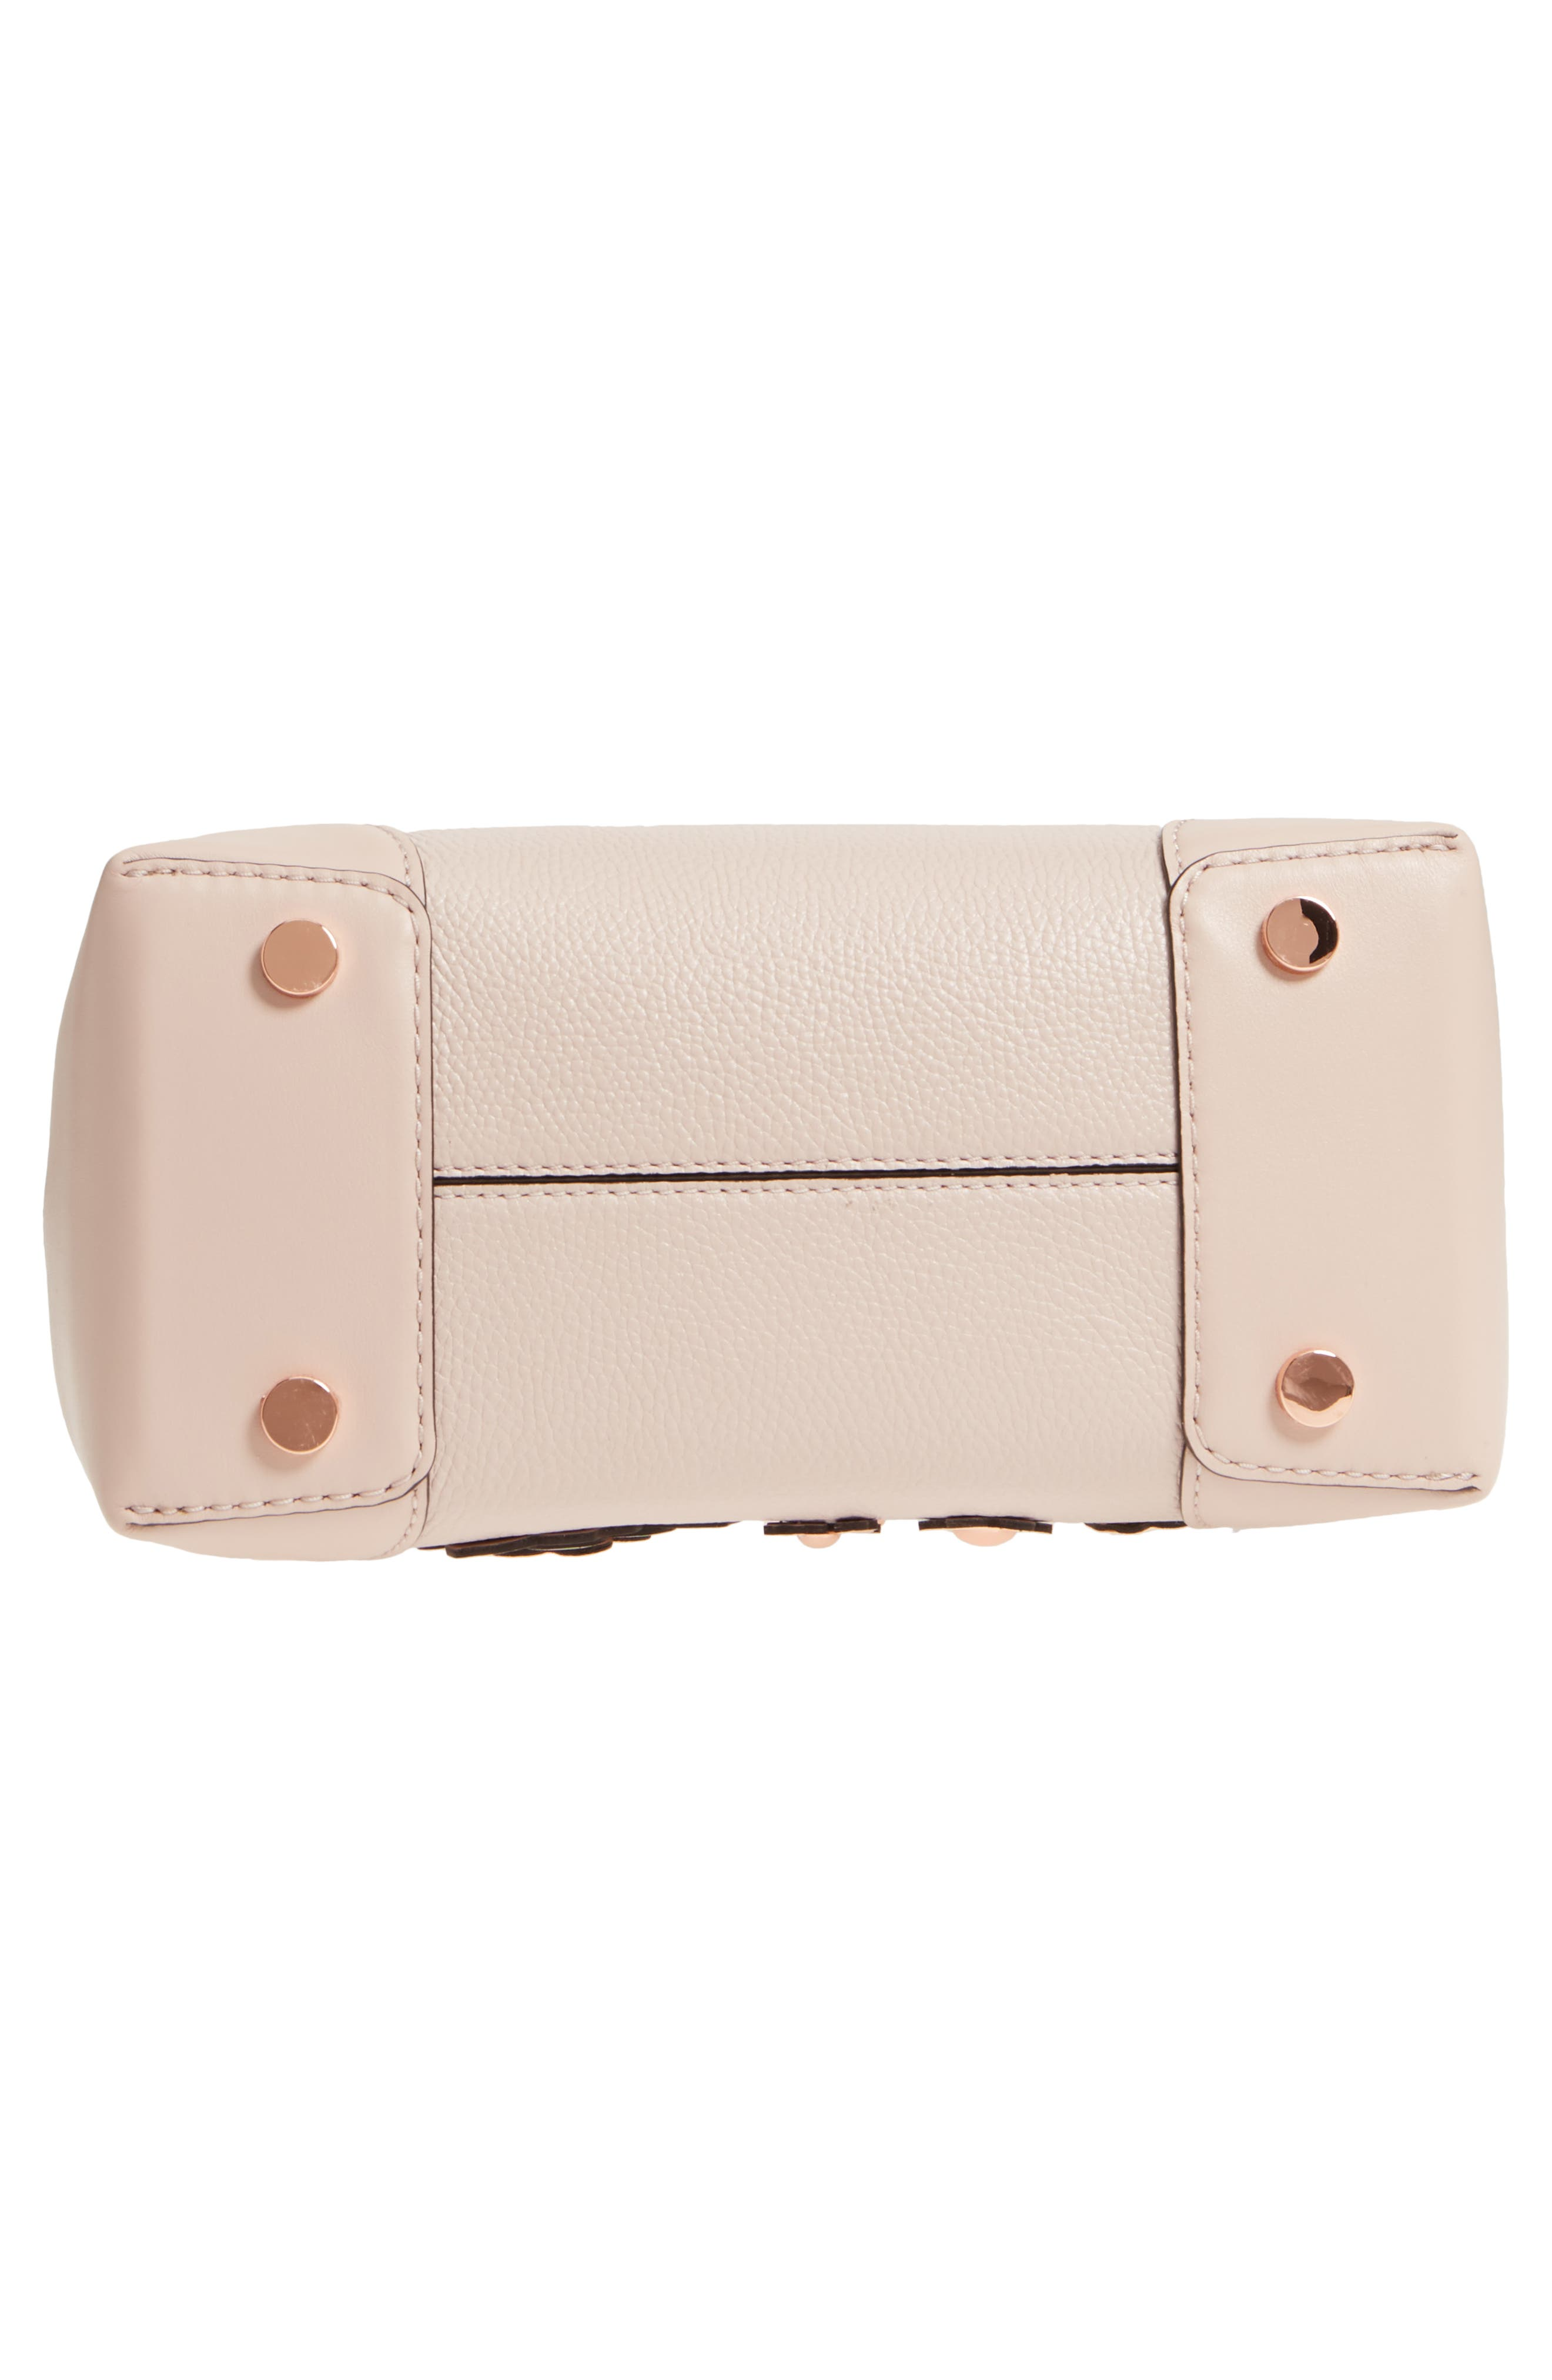 Small Mercer Gallery Leather Satchel,                             Alternate thumbnail 6, color,                             Soft Pink Multi